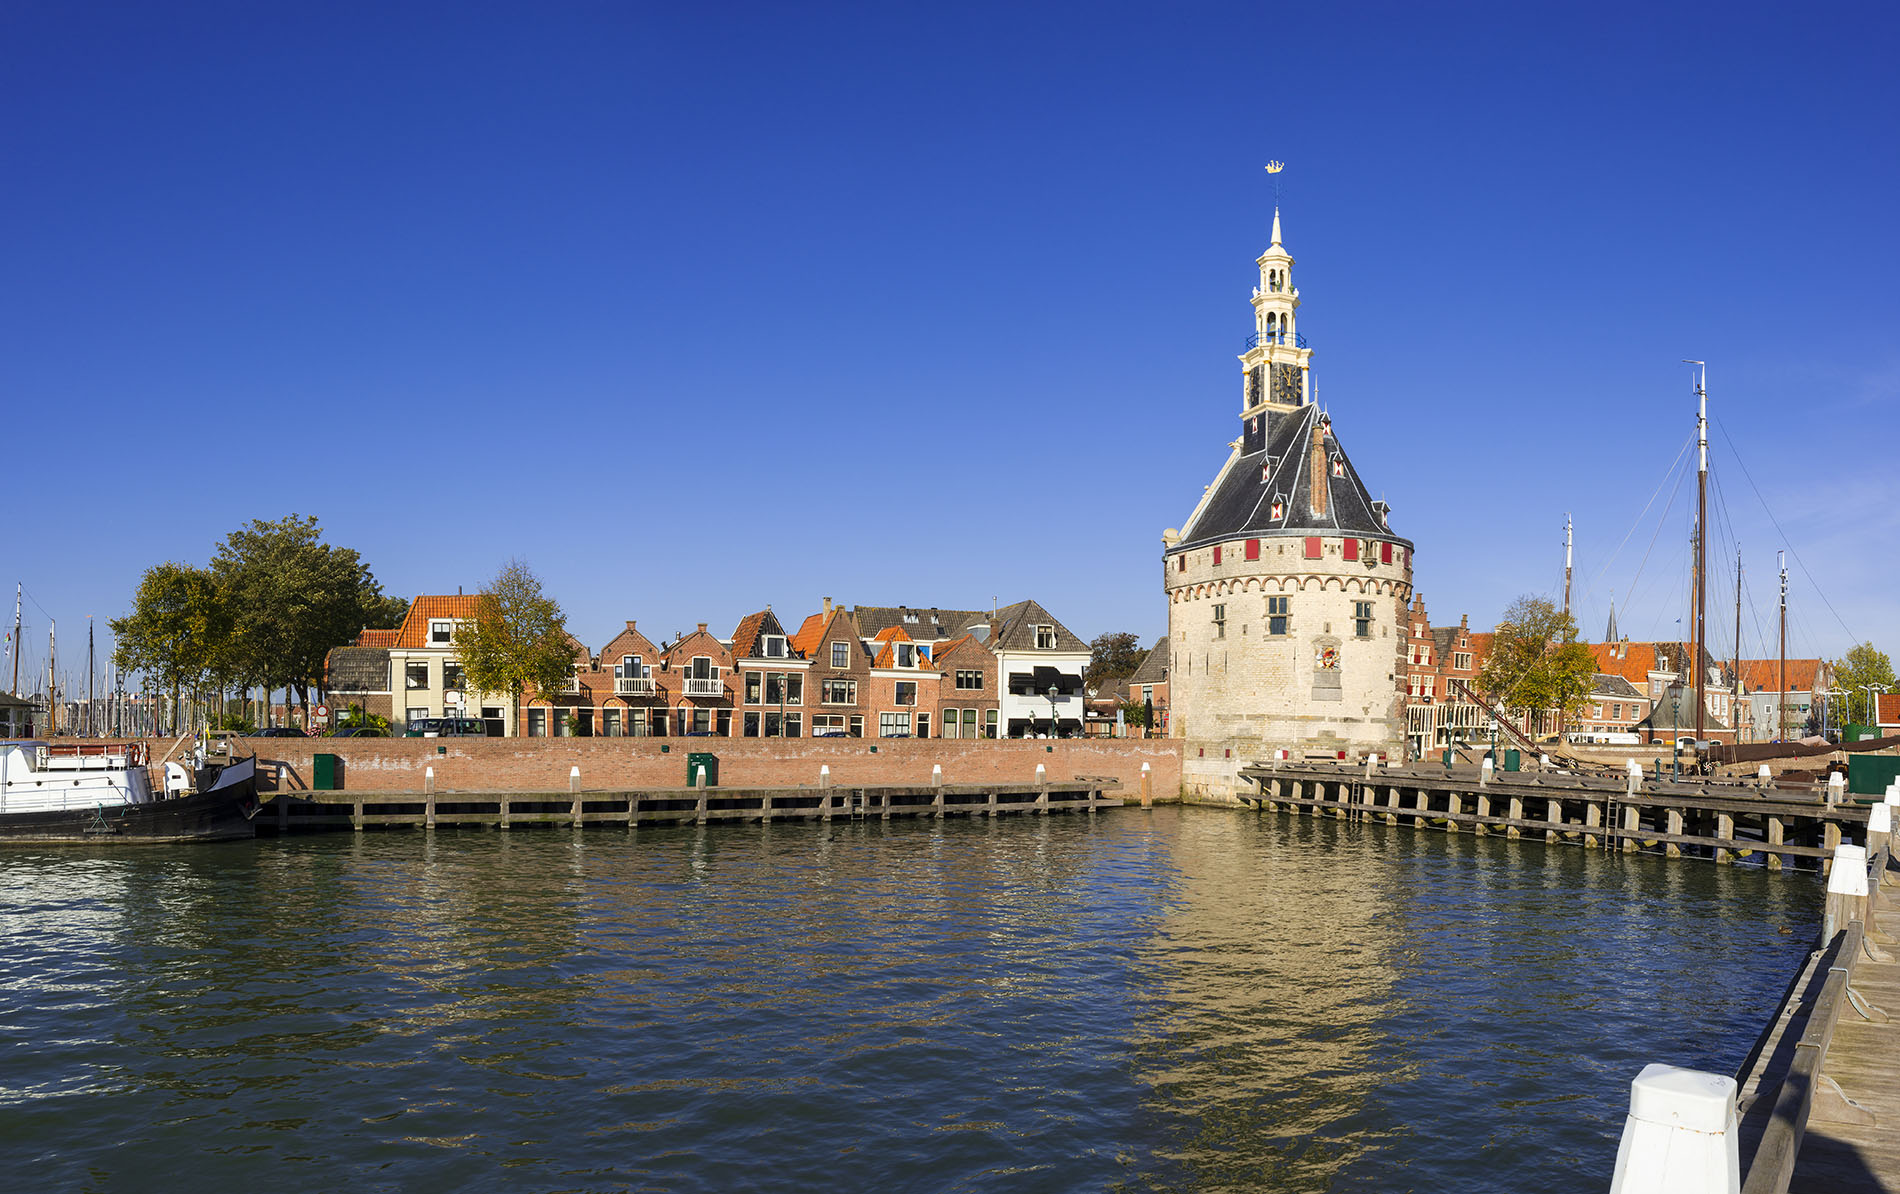 Quaint dock in Hoorn, Netherlands